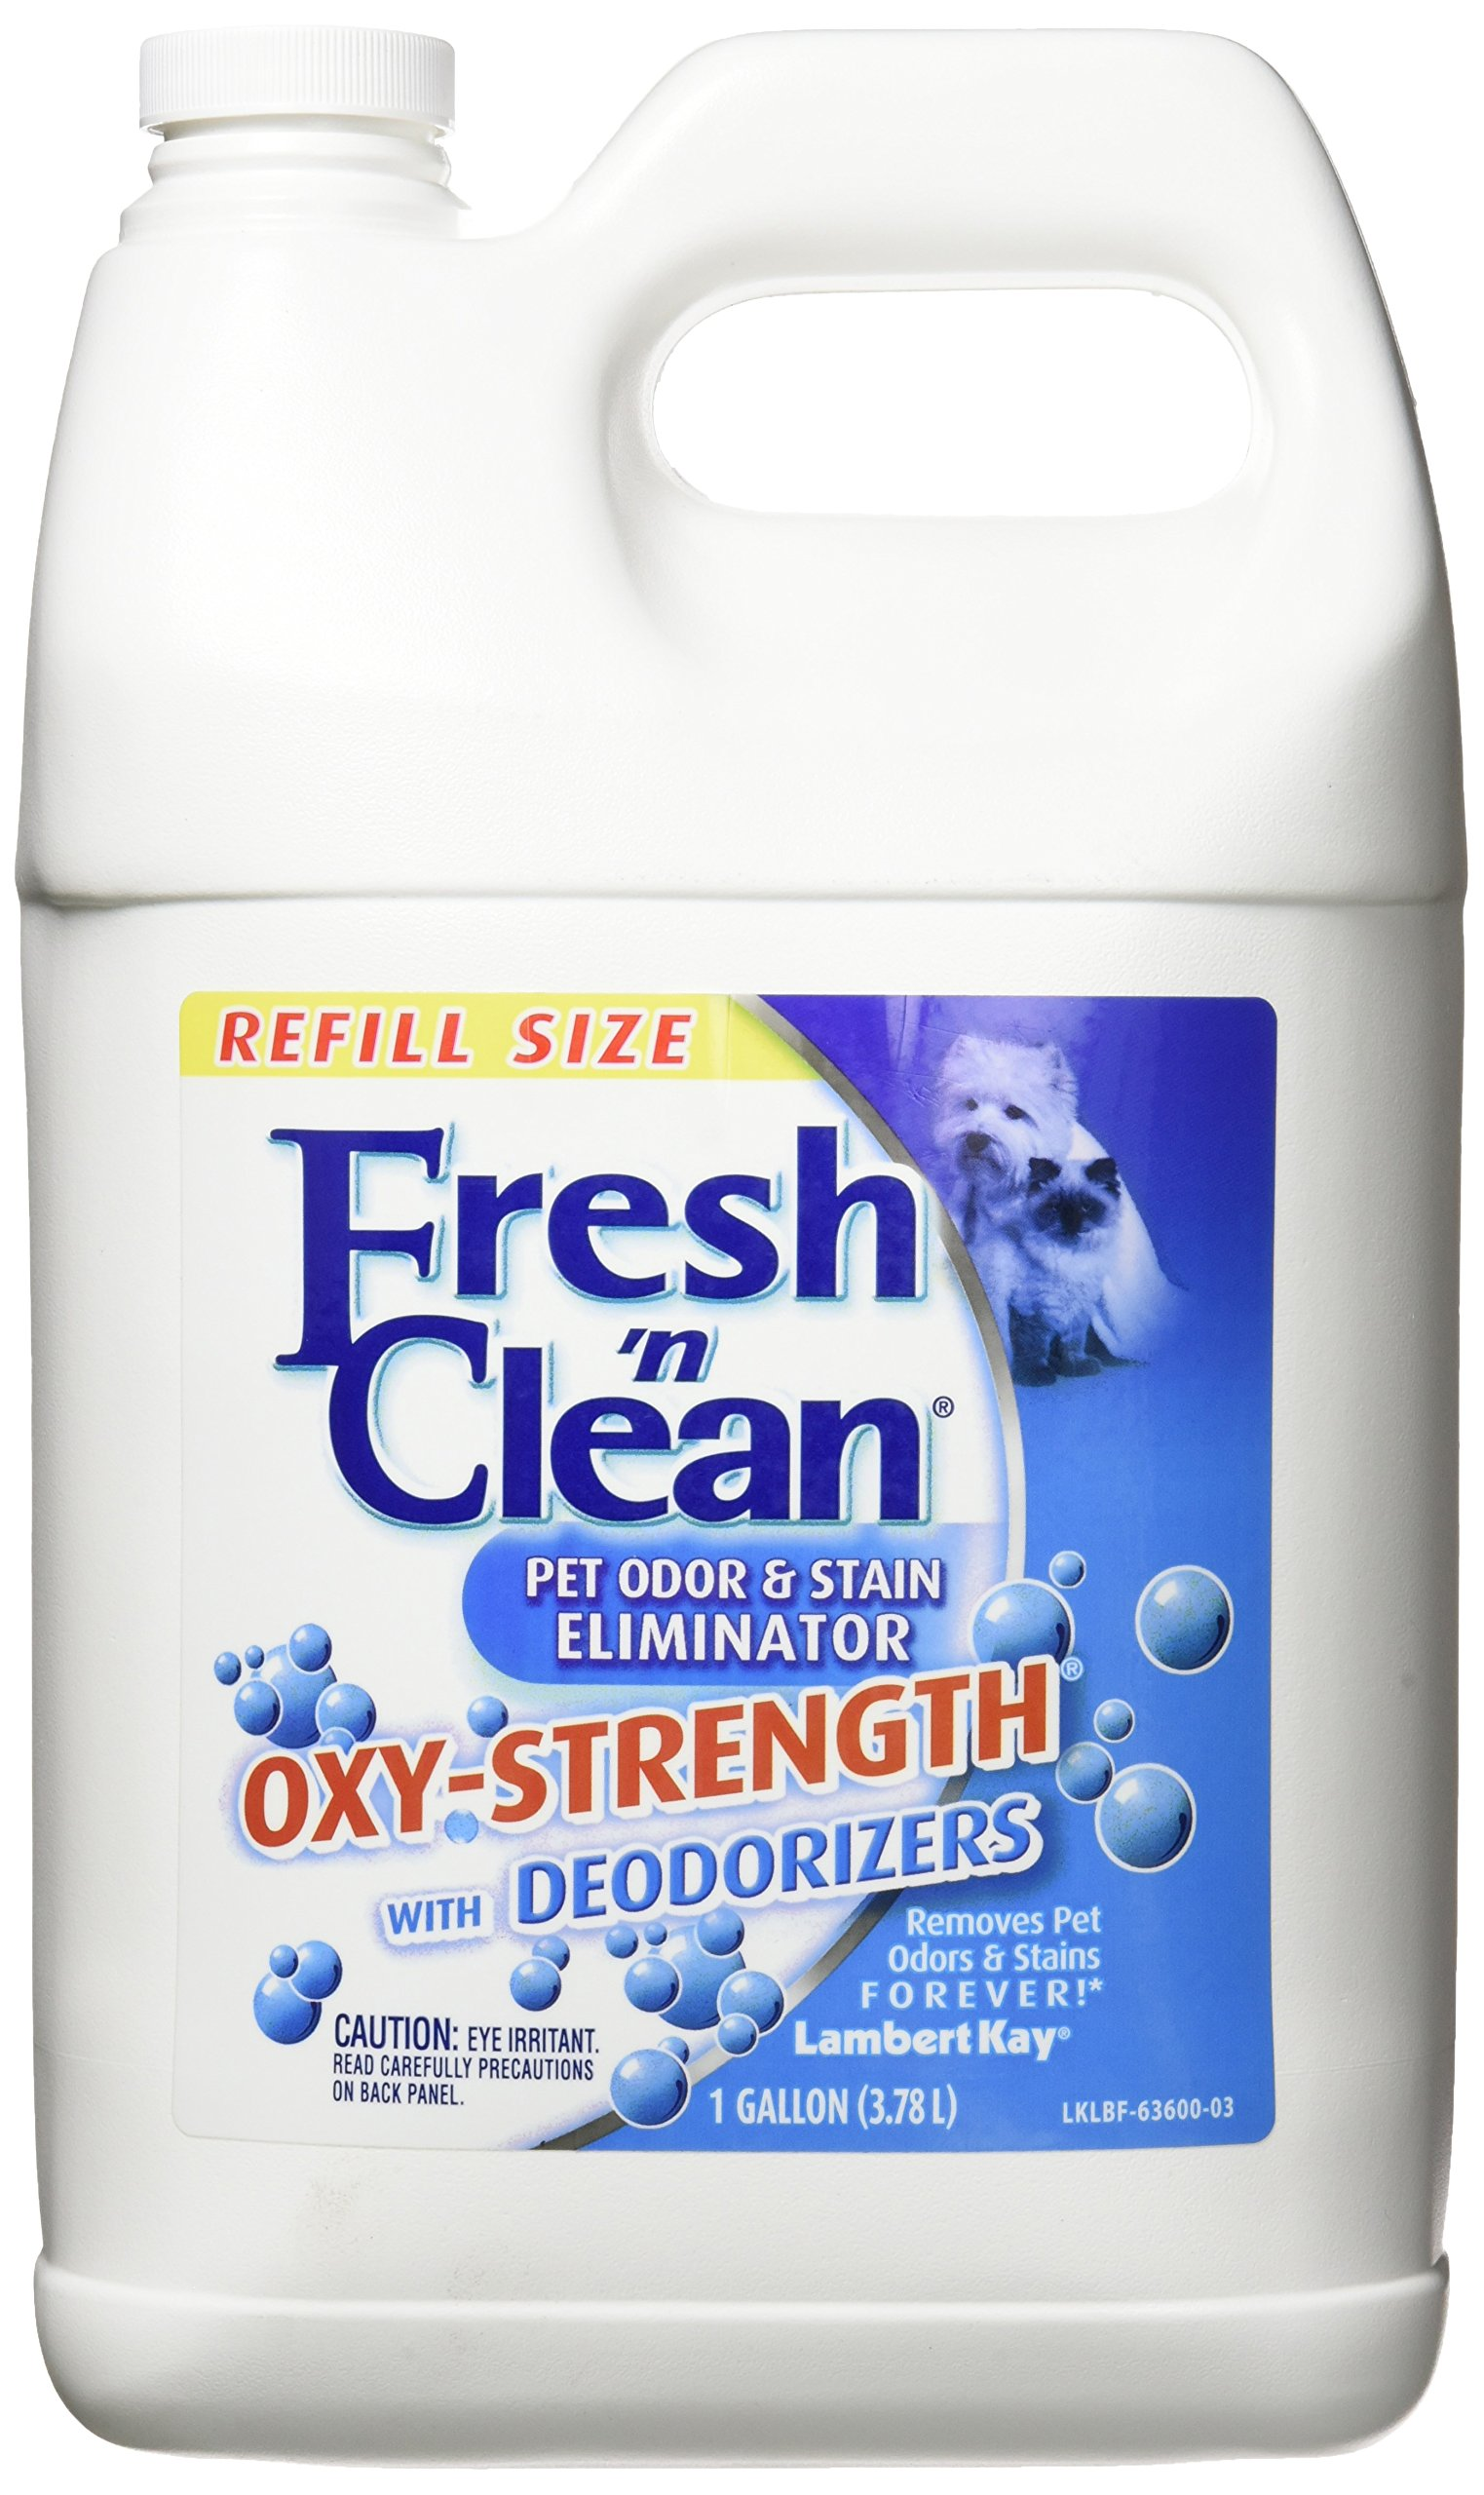 Fresh N Clean Lambert Kay Oxy-Strength Pet Odor and Stain Eliminator, 1-Gallon